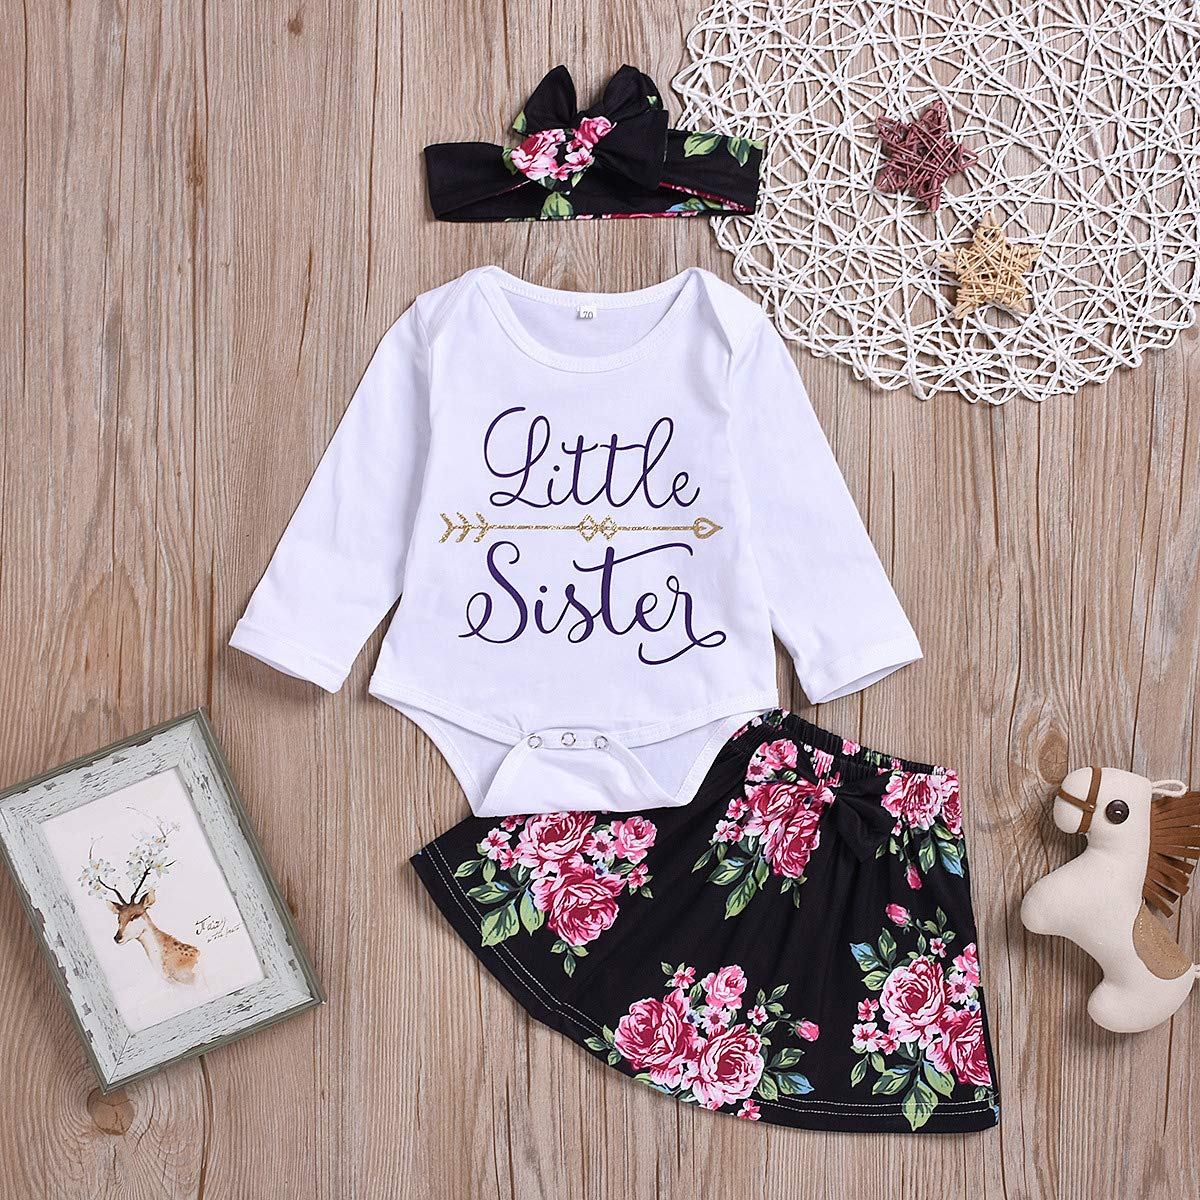 puseky Baby Girls Big Little Sister Matching Family Clothes Romper+Floral Pants+Headband Outfits Set